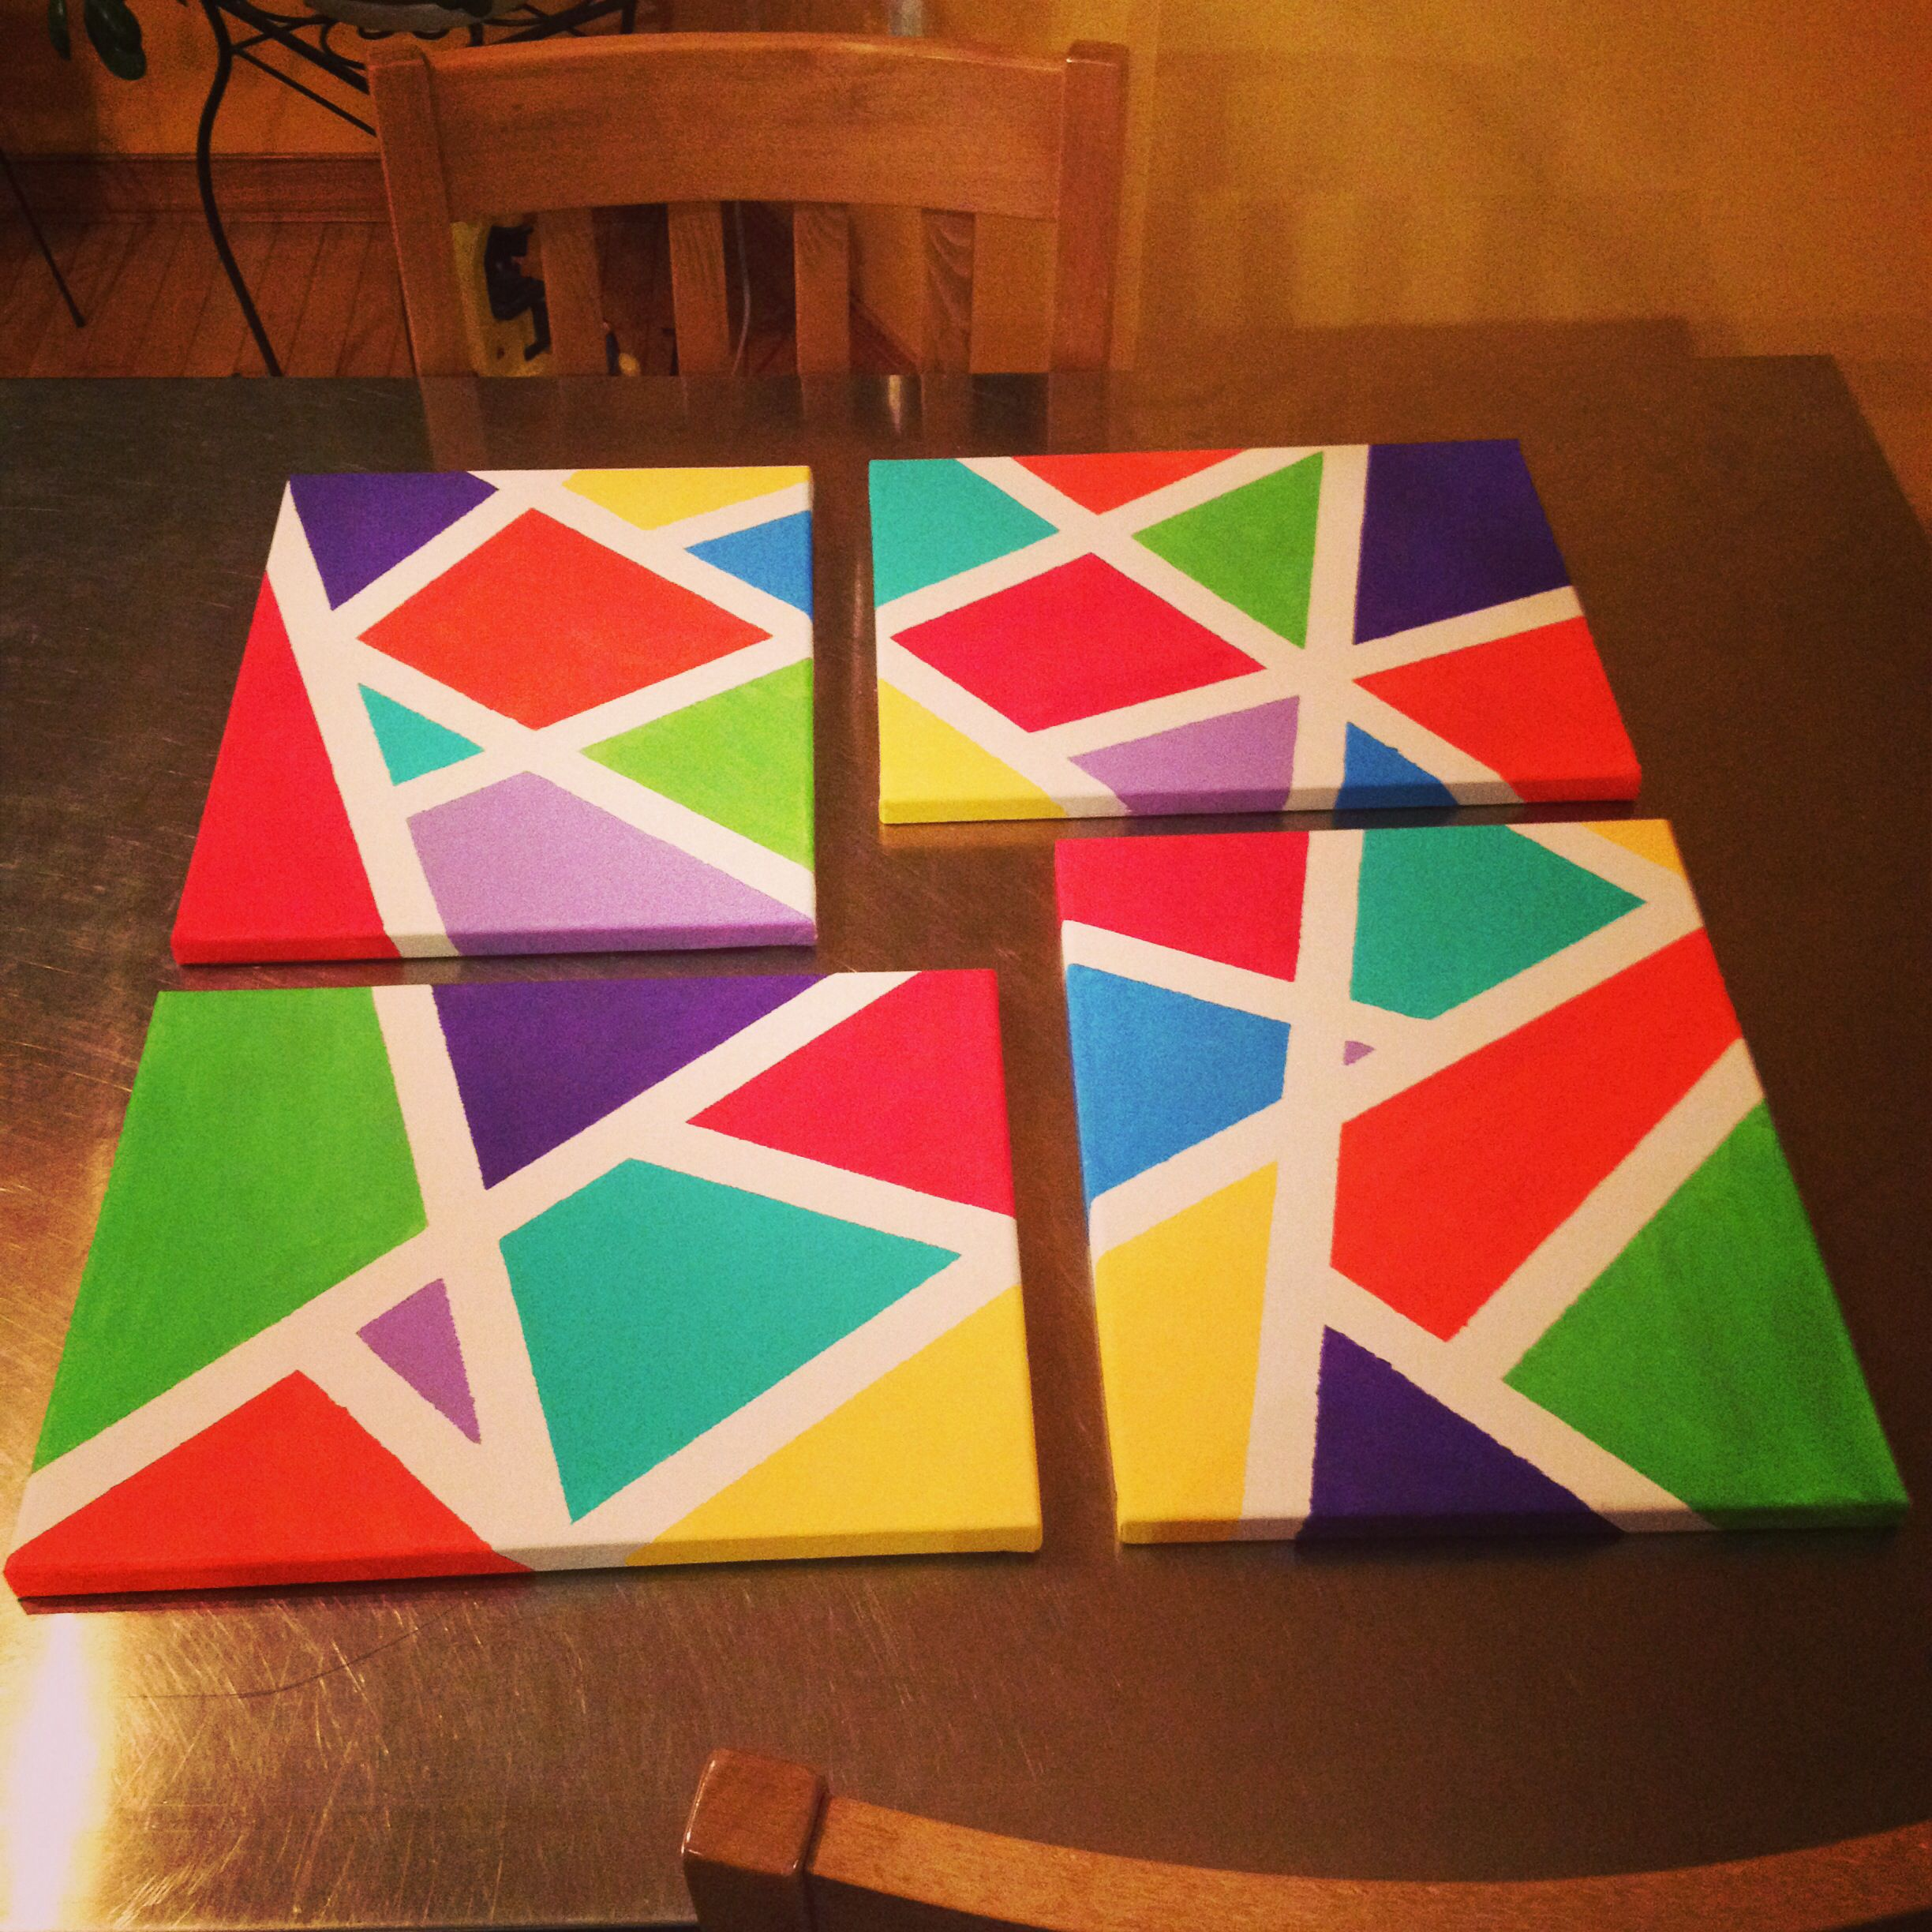 Painting Ideas With Tape: DIY Canvas Painting Using Painters Tape